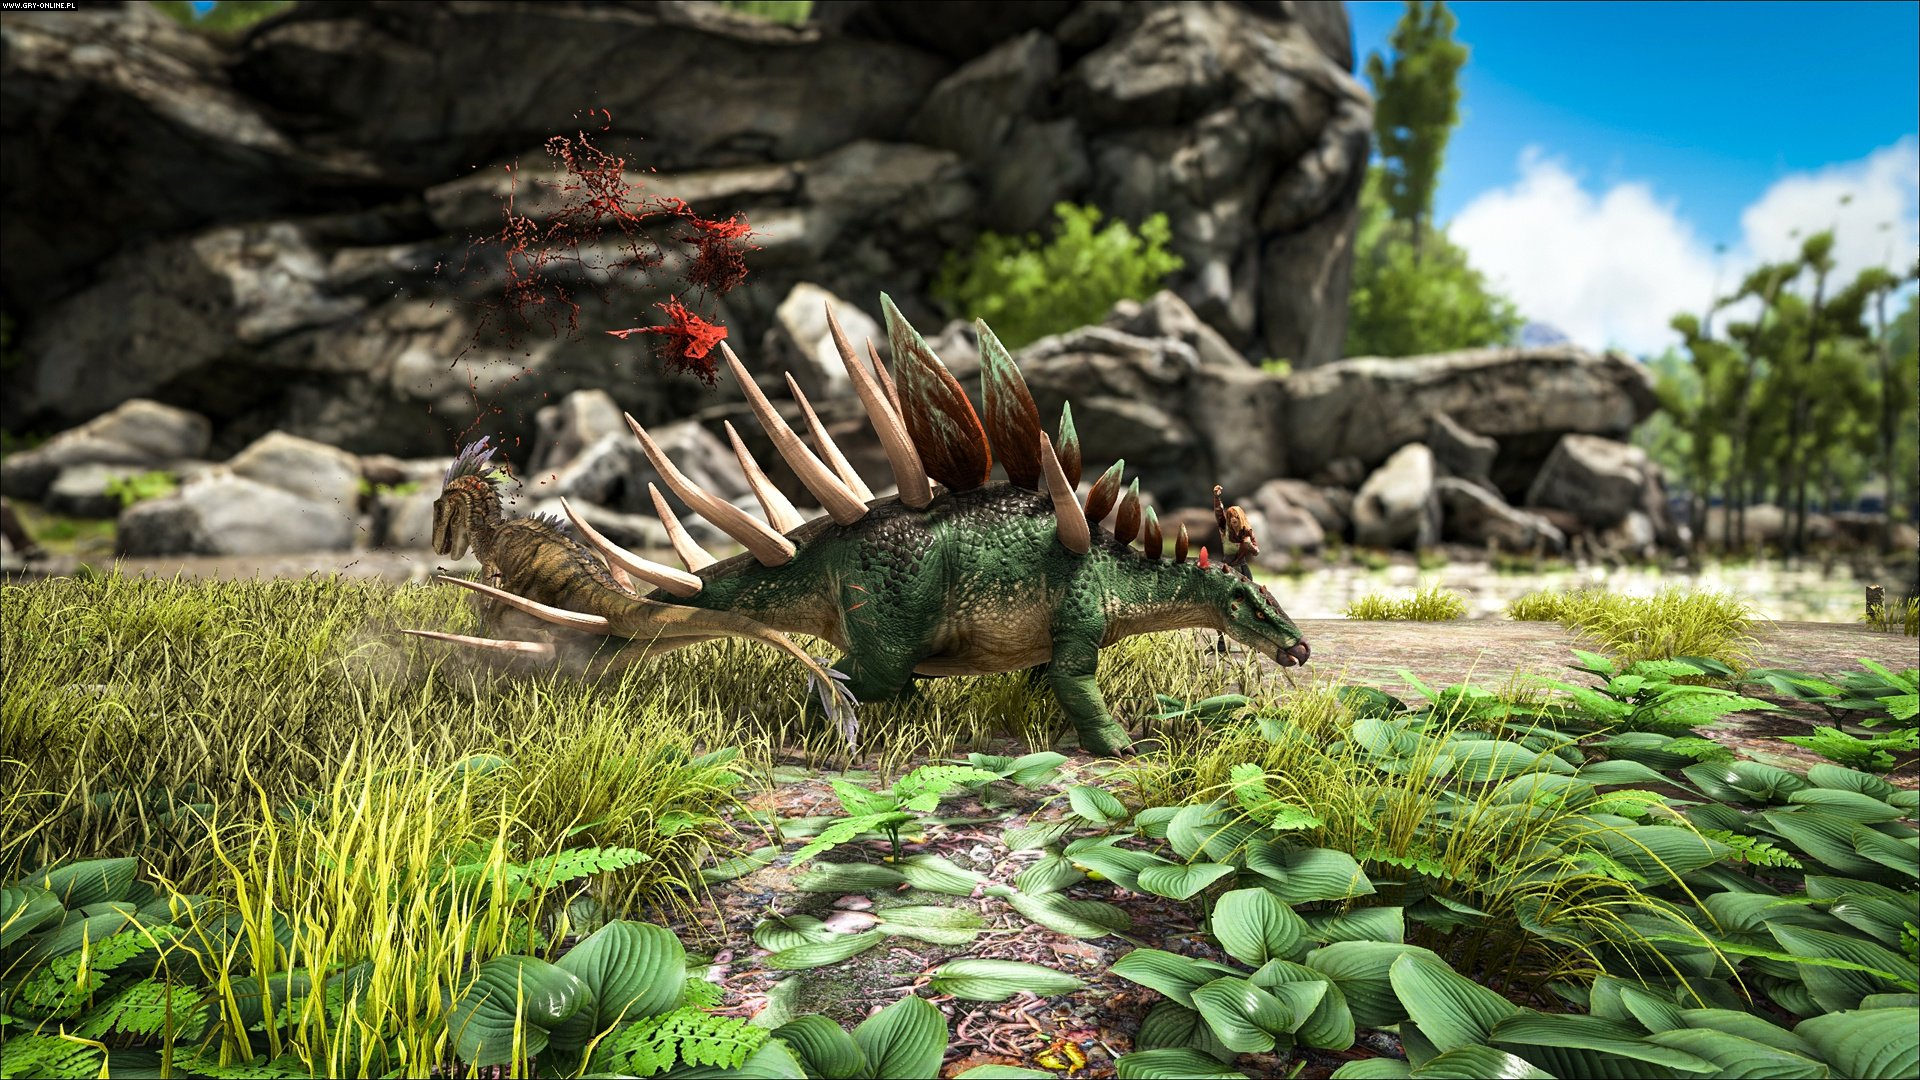 ARK: Survival Evolved PC, PS4, XONE, Switch Gry Screen 41/148, Studio Wildcard